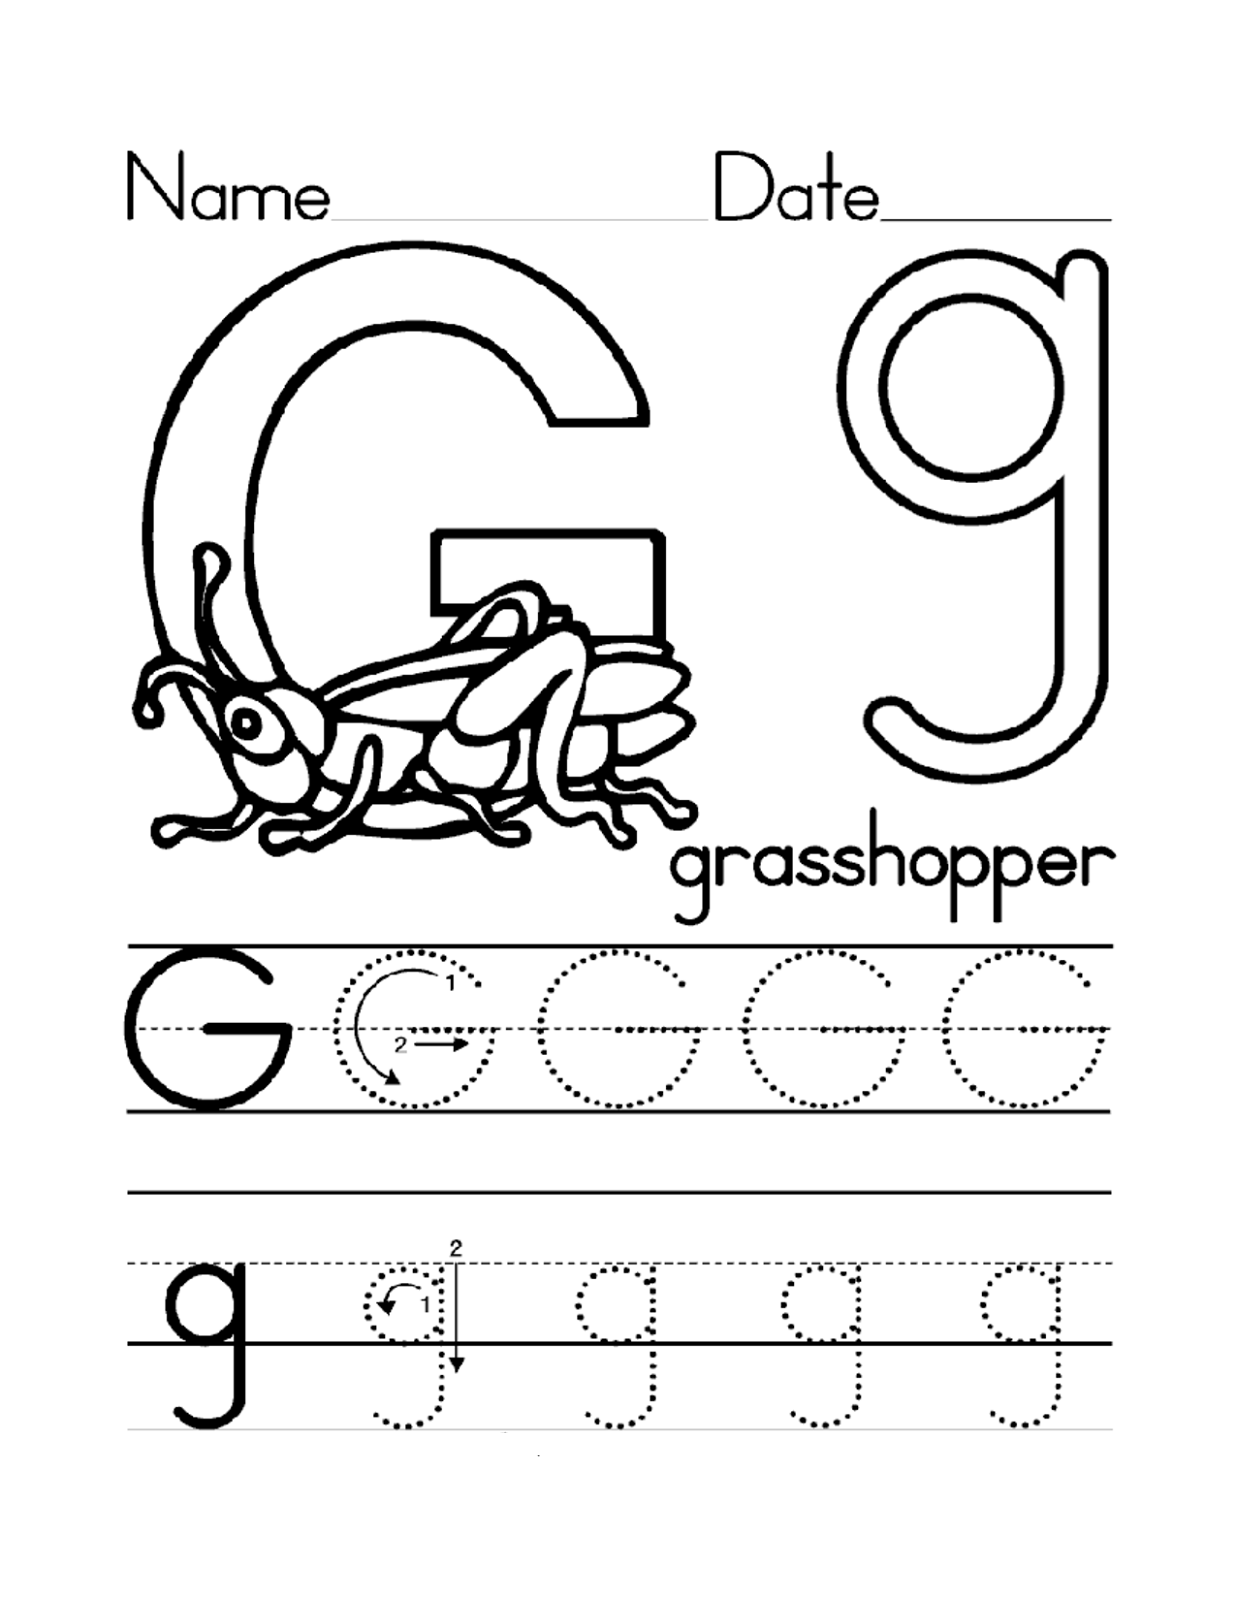 Printables Letter G Worksheets trace letter g worksheets activity shelter grasshopper